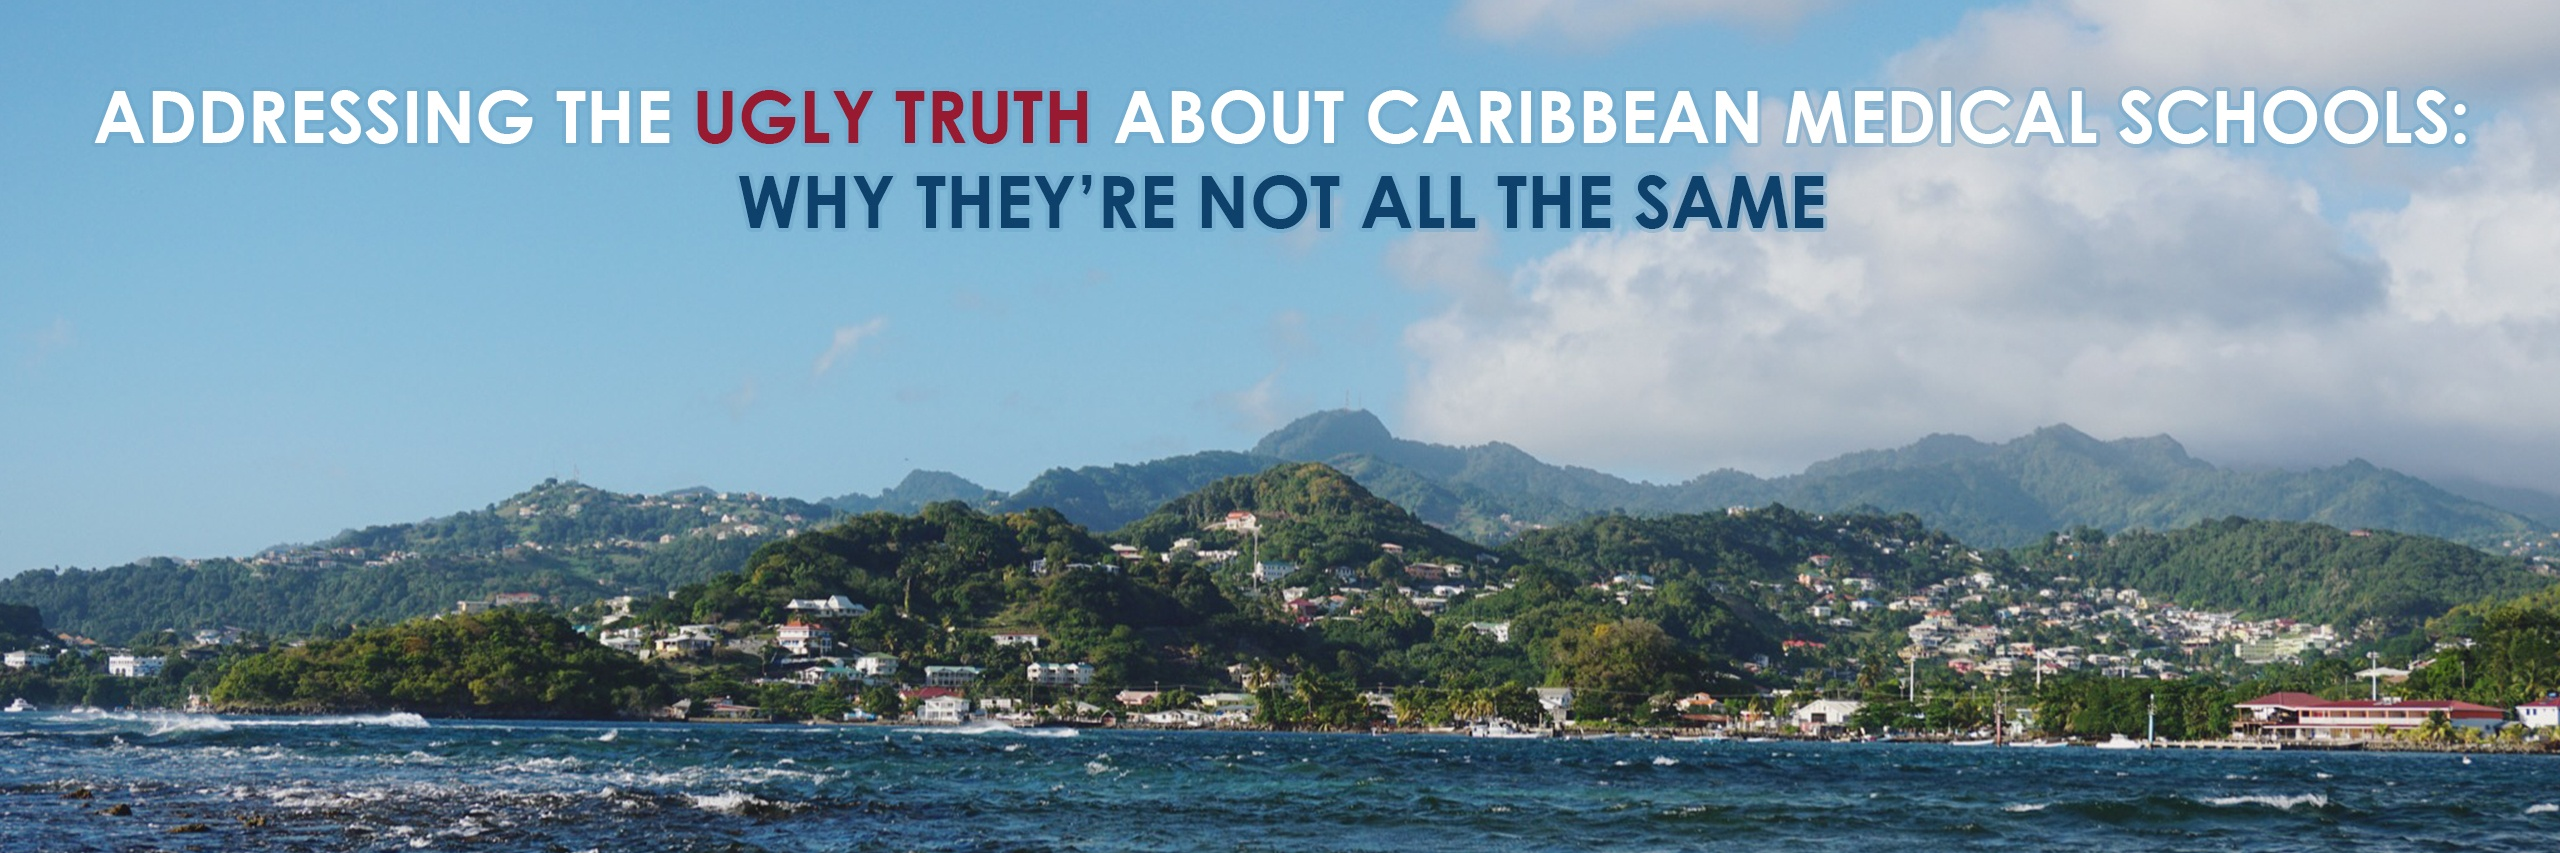 Addressing the Ugly Truth about Caribbean Medical Schools: Why They're Not All the Same